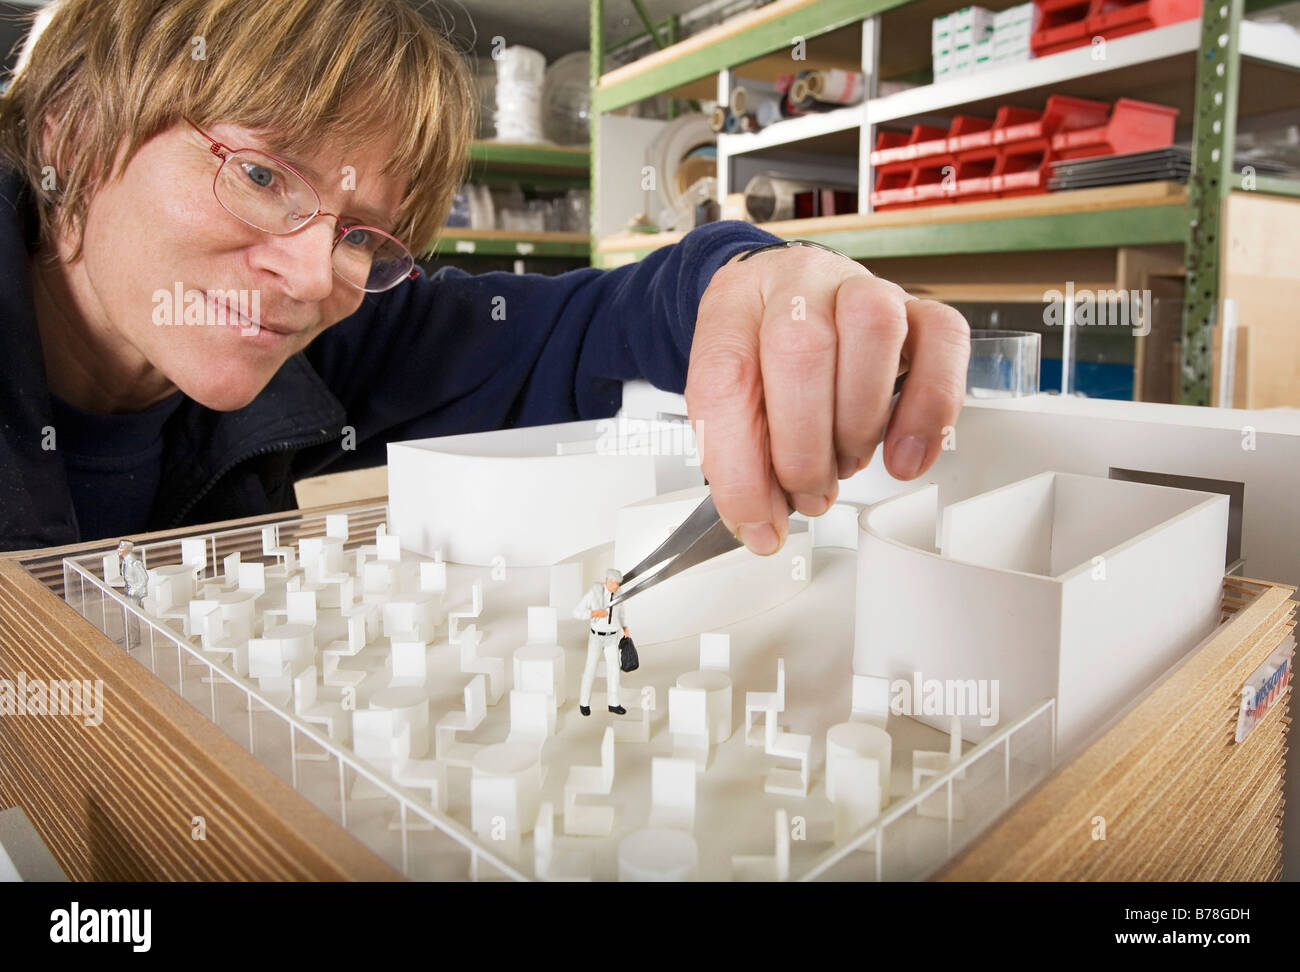 Model builder for the Expomobilia company which constructs exhibition booths placing a model figure in the model - Stock Image